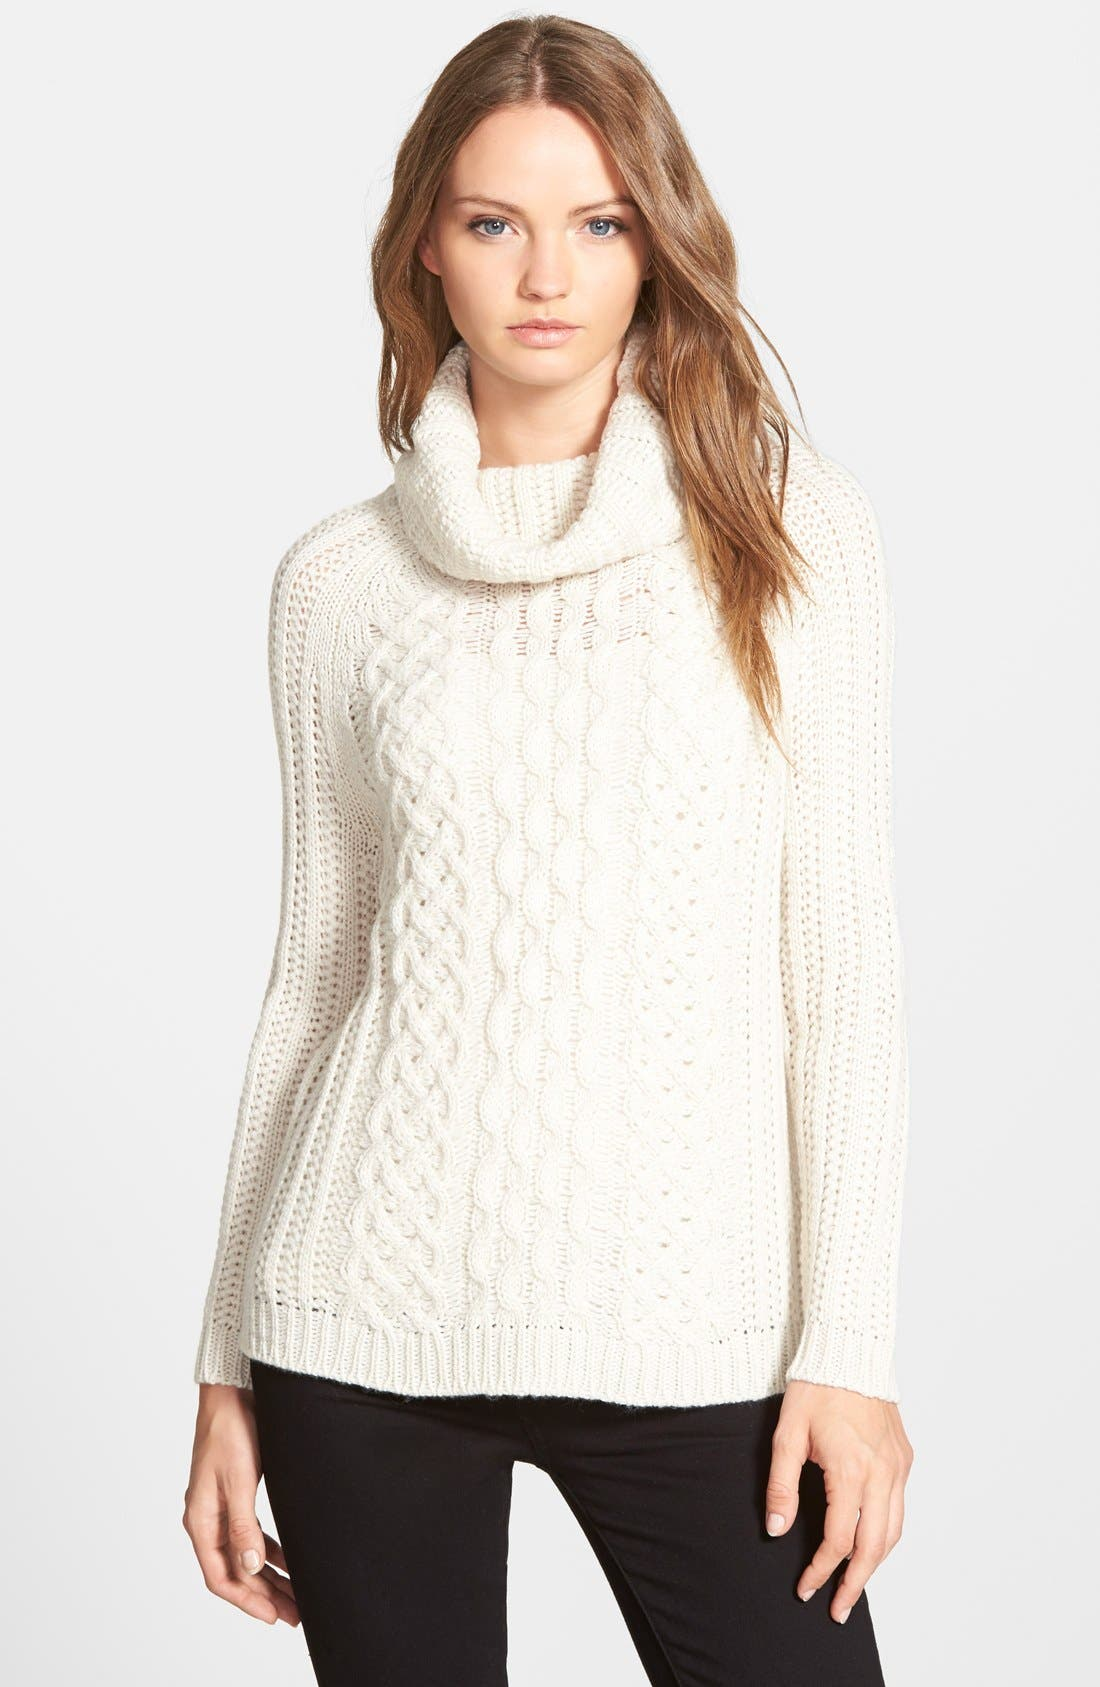 Alternate Image 1 Selected - cupcakes and cashmere 'Sleepy Hollow' Turtleneck Sweater